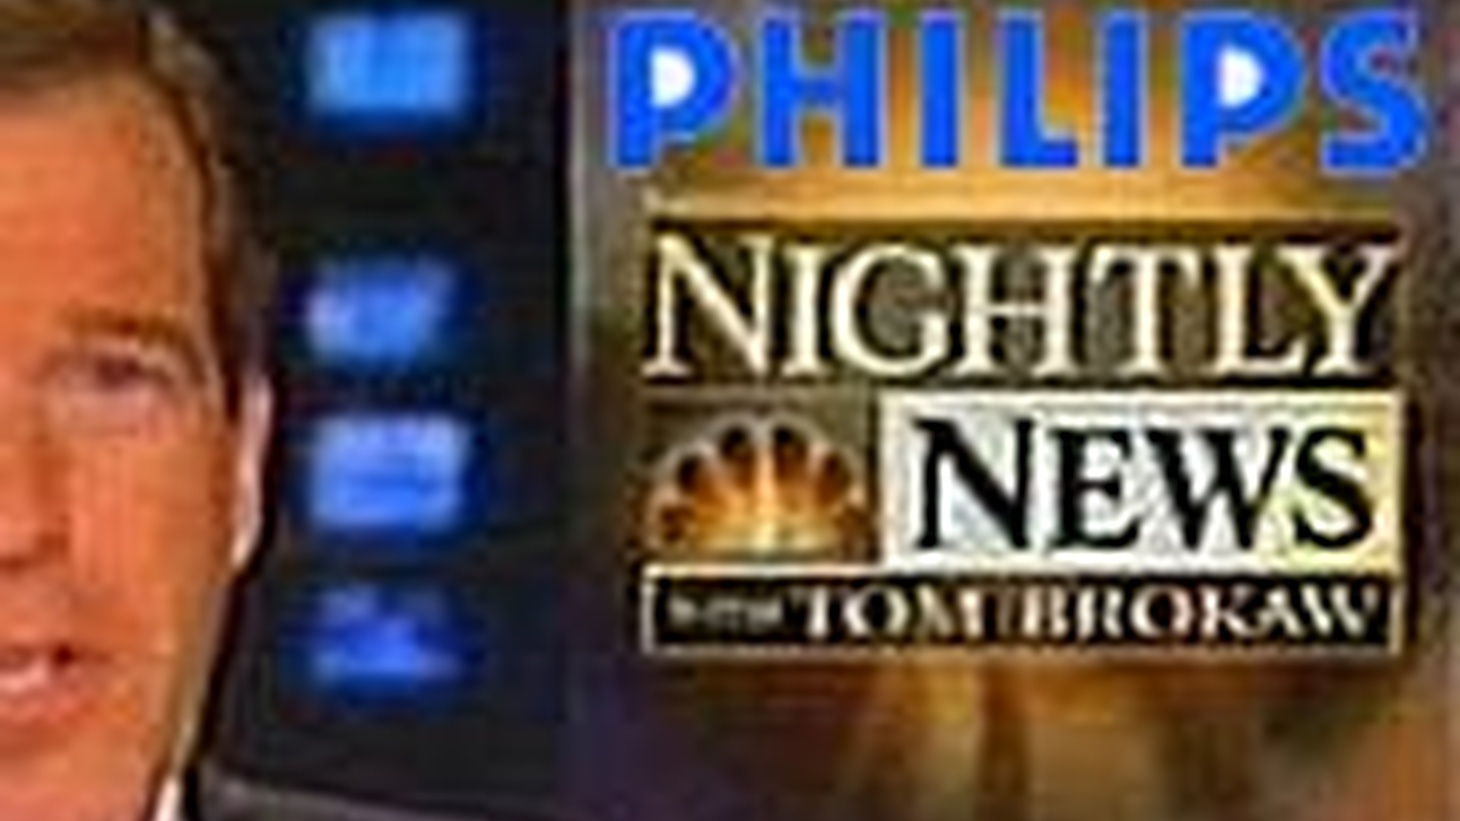 If you're old enough to remember Texaco Star Theater or the Schlitz Playhouse of Stars a few decades ago, you may have felt a sense of déjà vu last night if you were watching the NBC Nightly News...